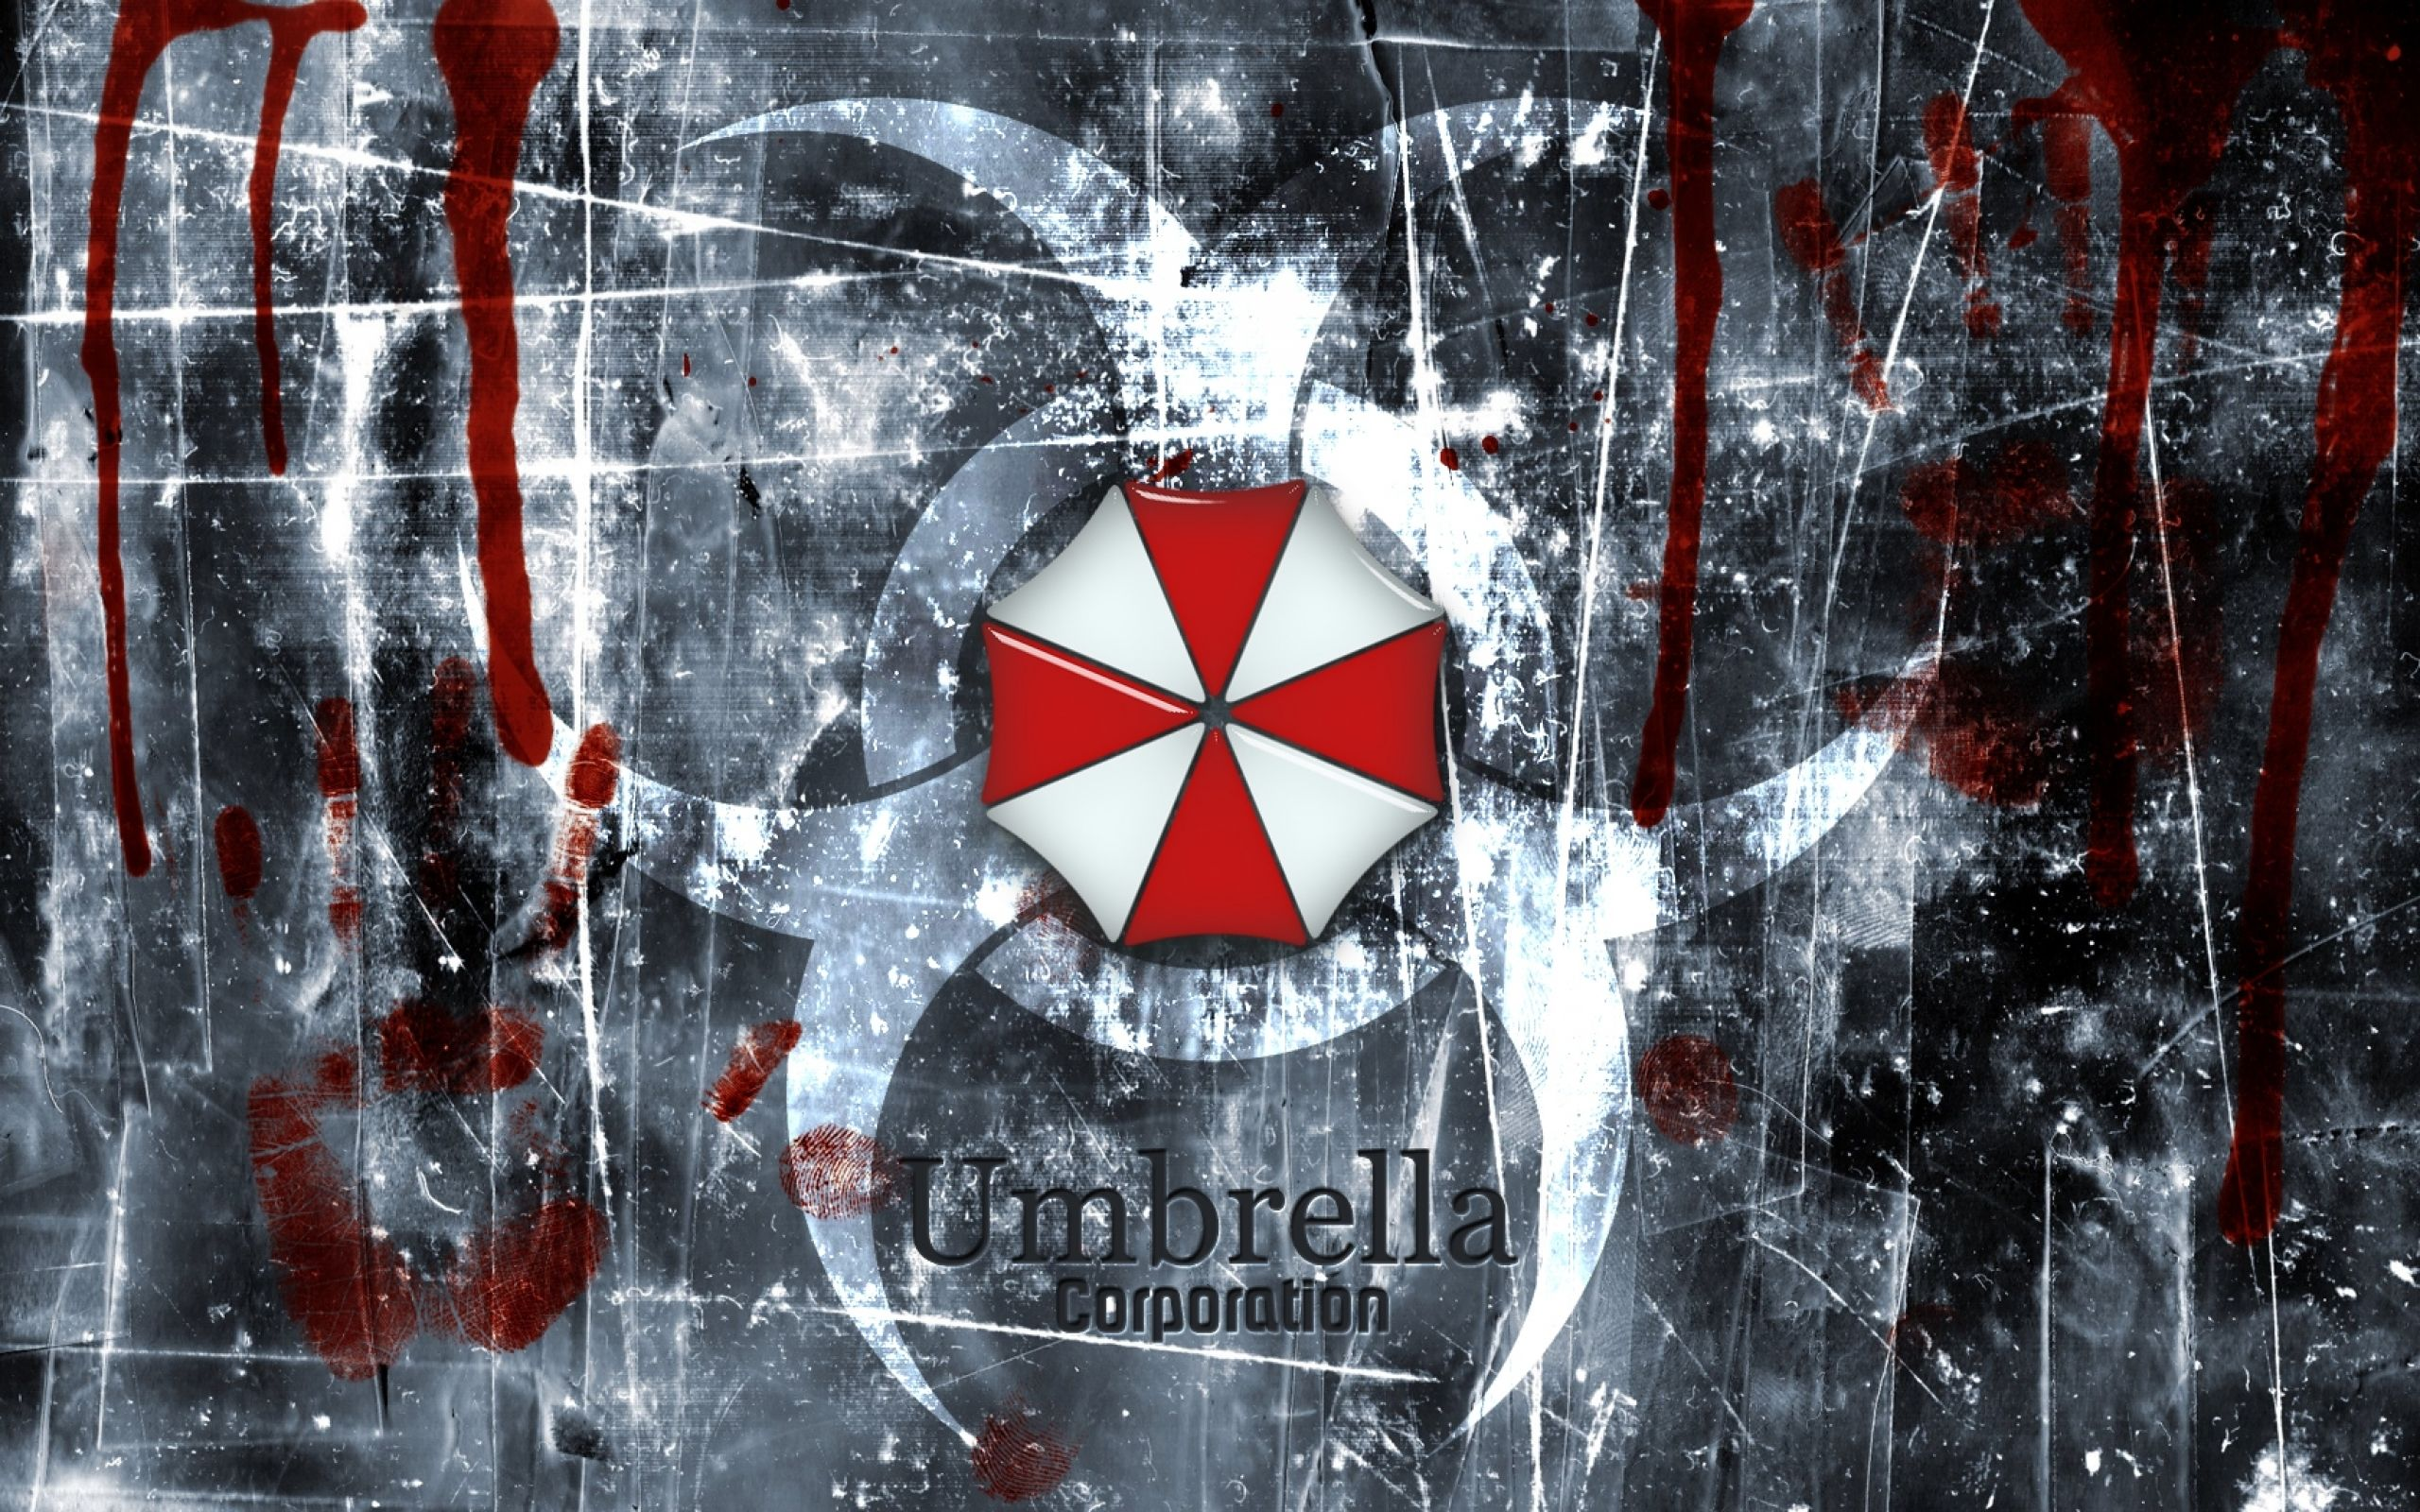 Umbrella Corp From Resident Evil With Images Resident Evil Movie Resident Evil Game Resident Evil